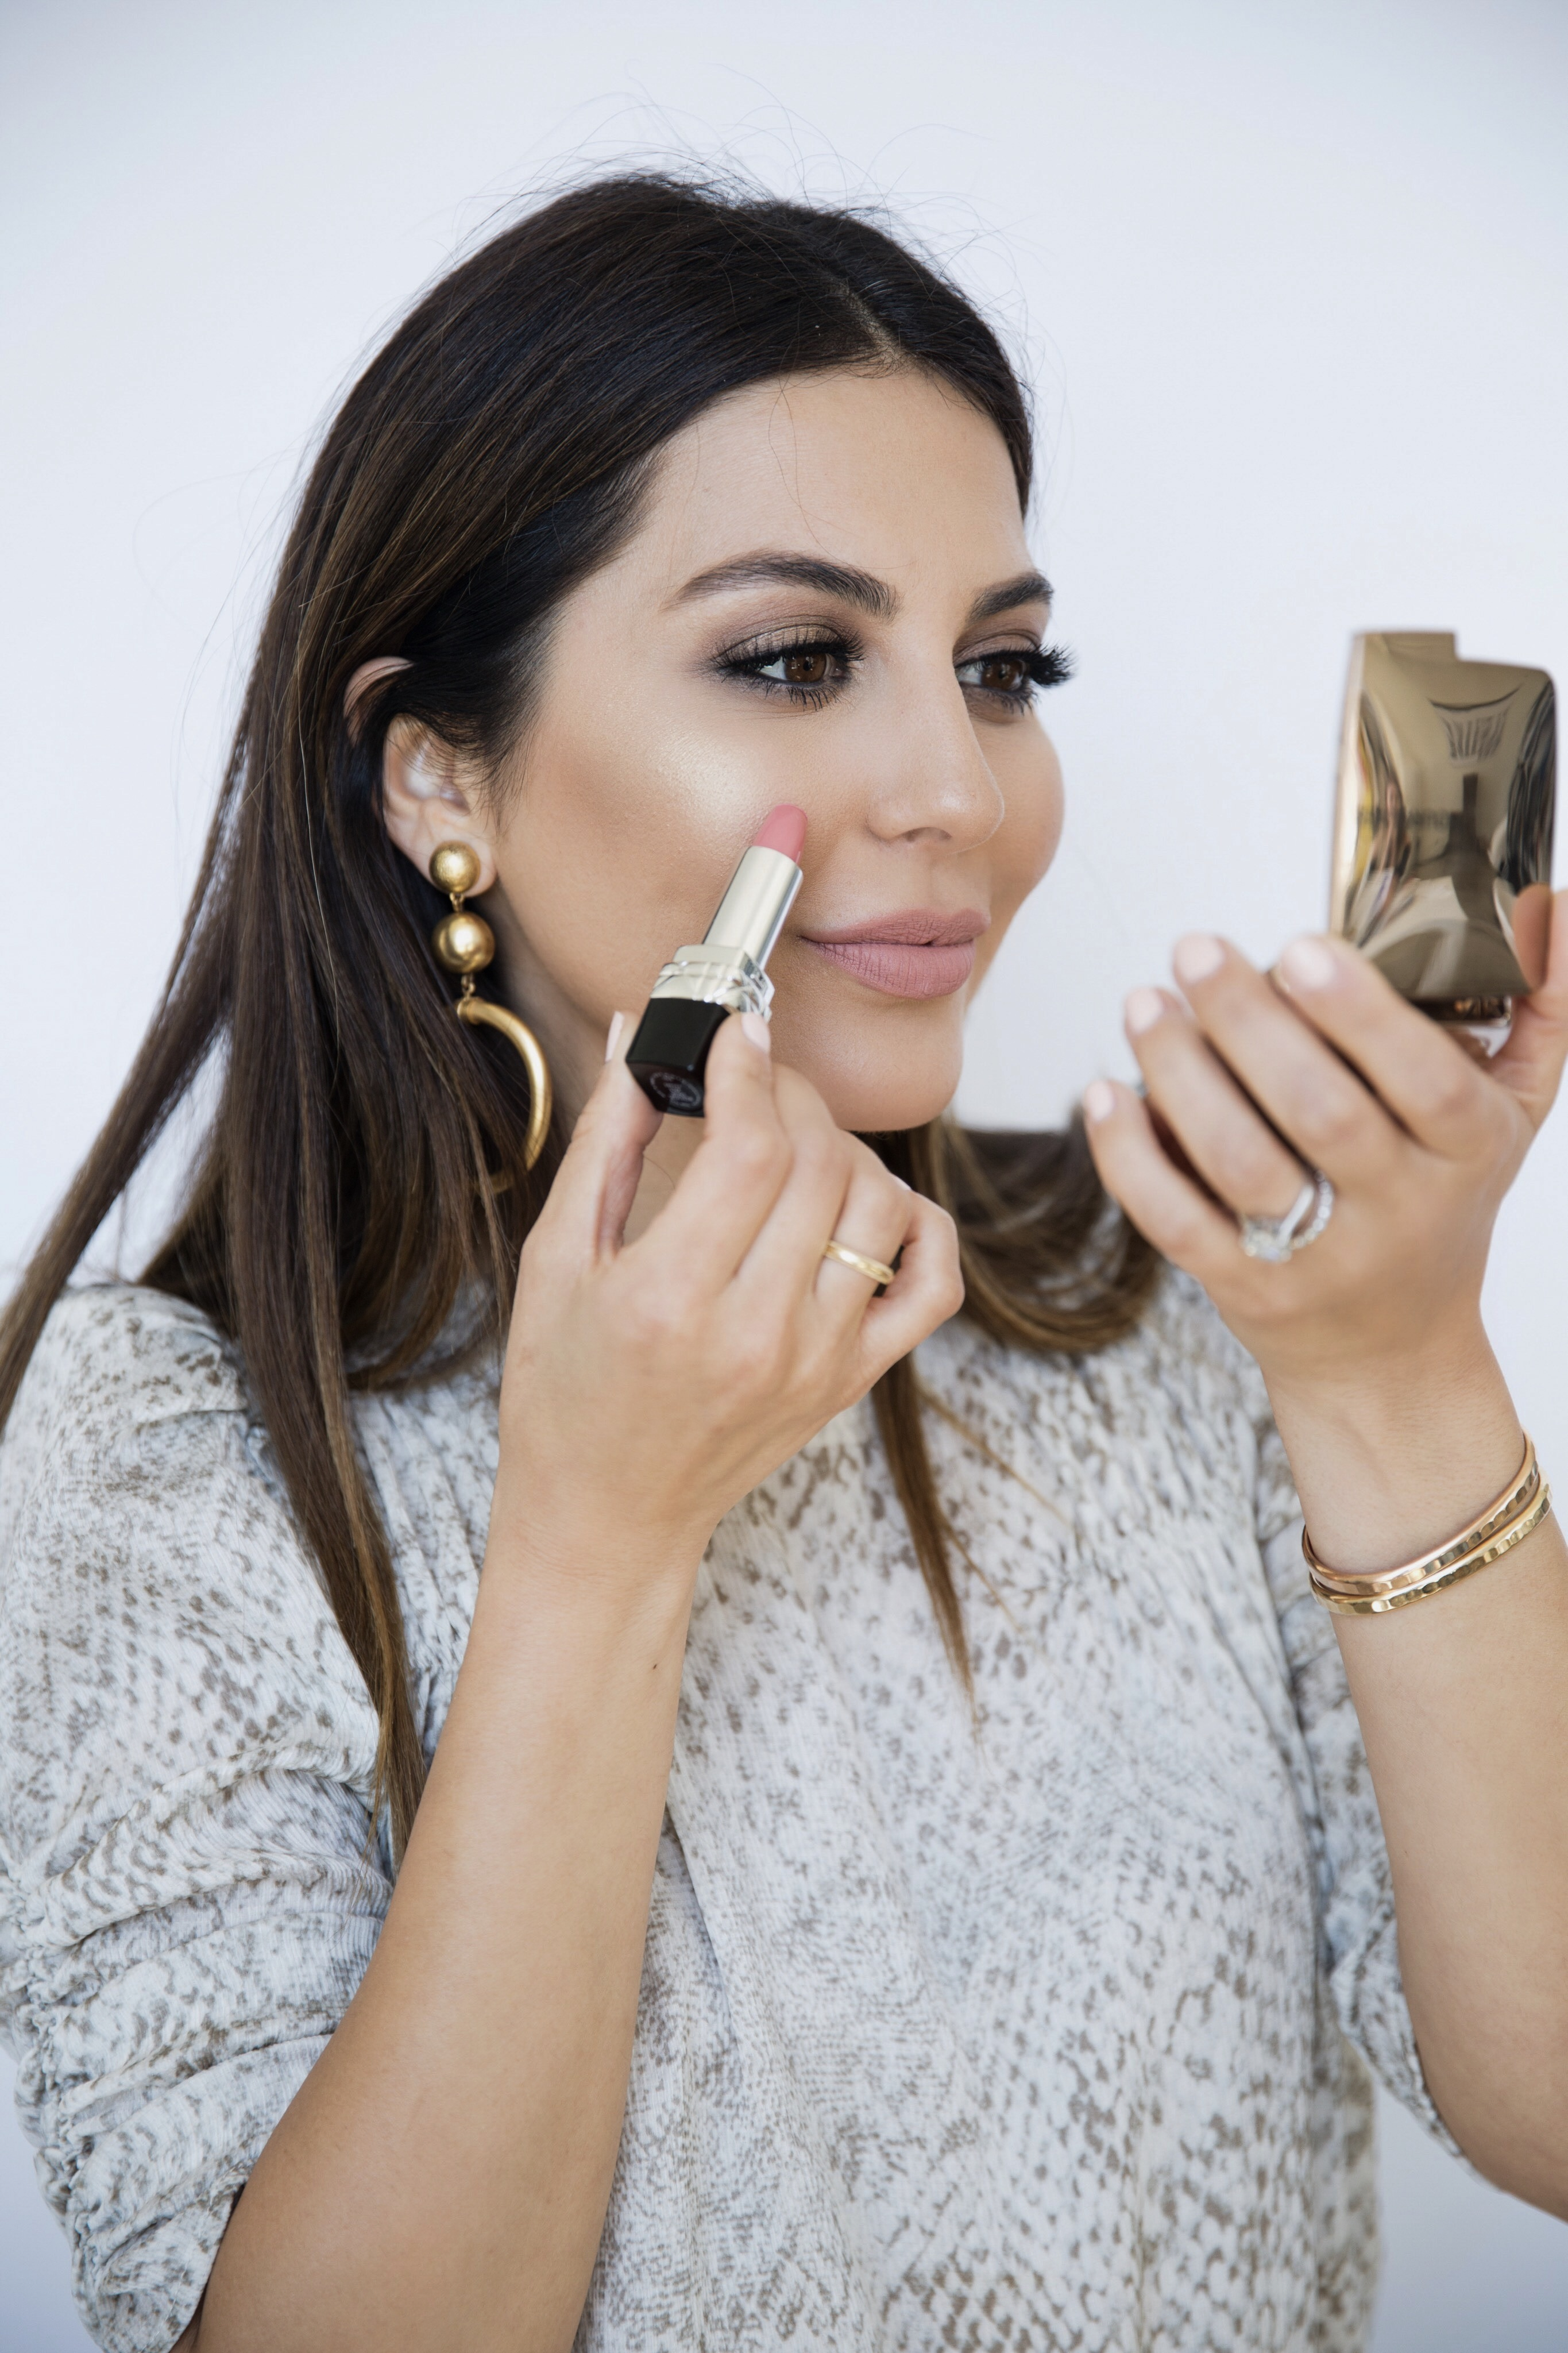 sona gasparian shows how to use multitasking beauty products